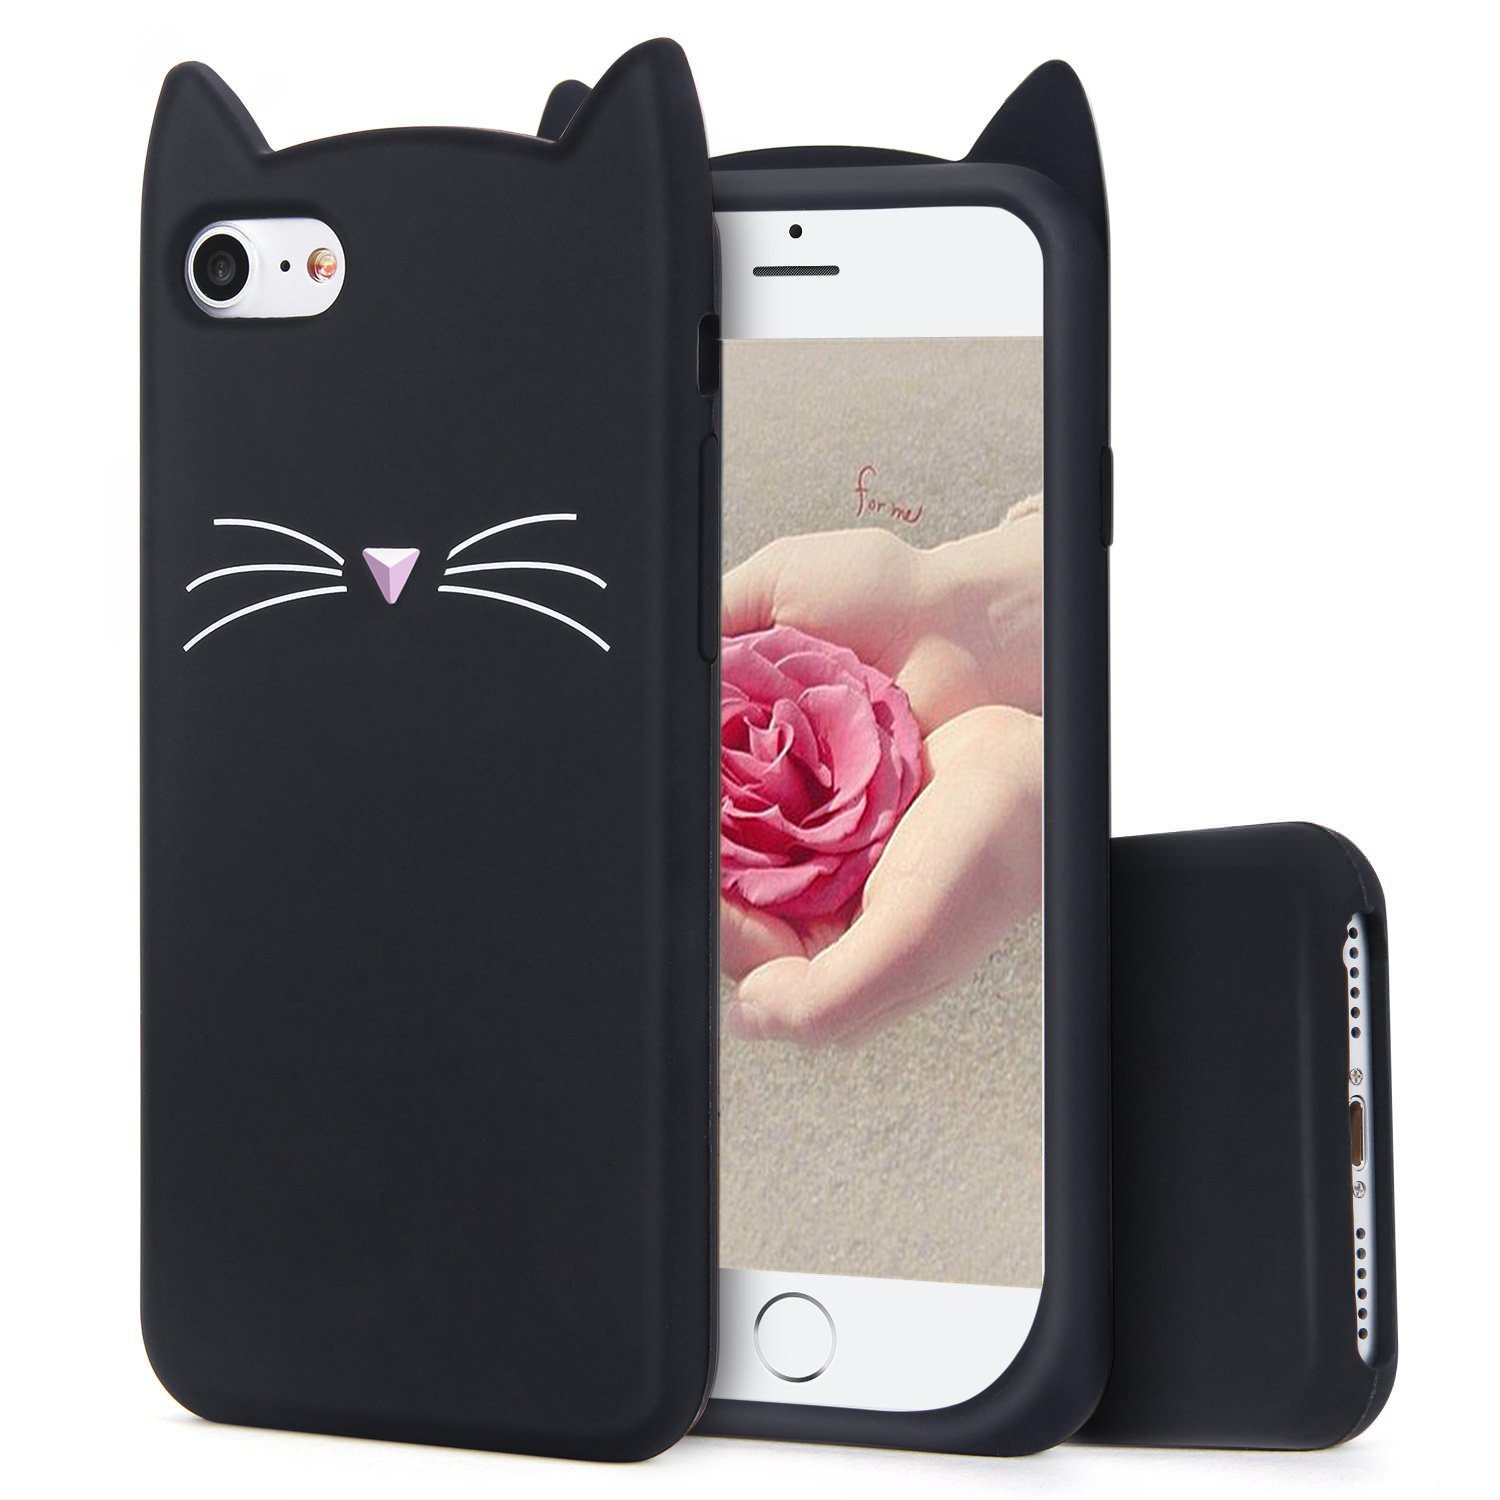 iphone 5 case cute amazon co ukiphone 5 silicone case, iphone 5s cute cover, iphone se cover, fashionable slim